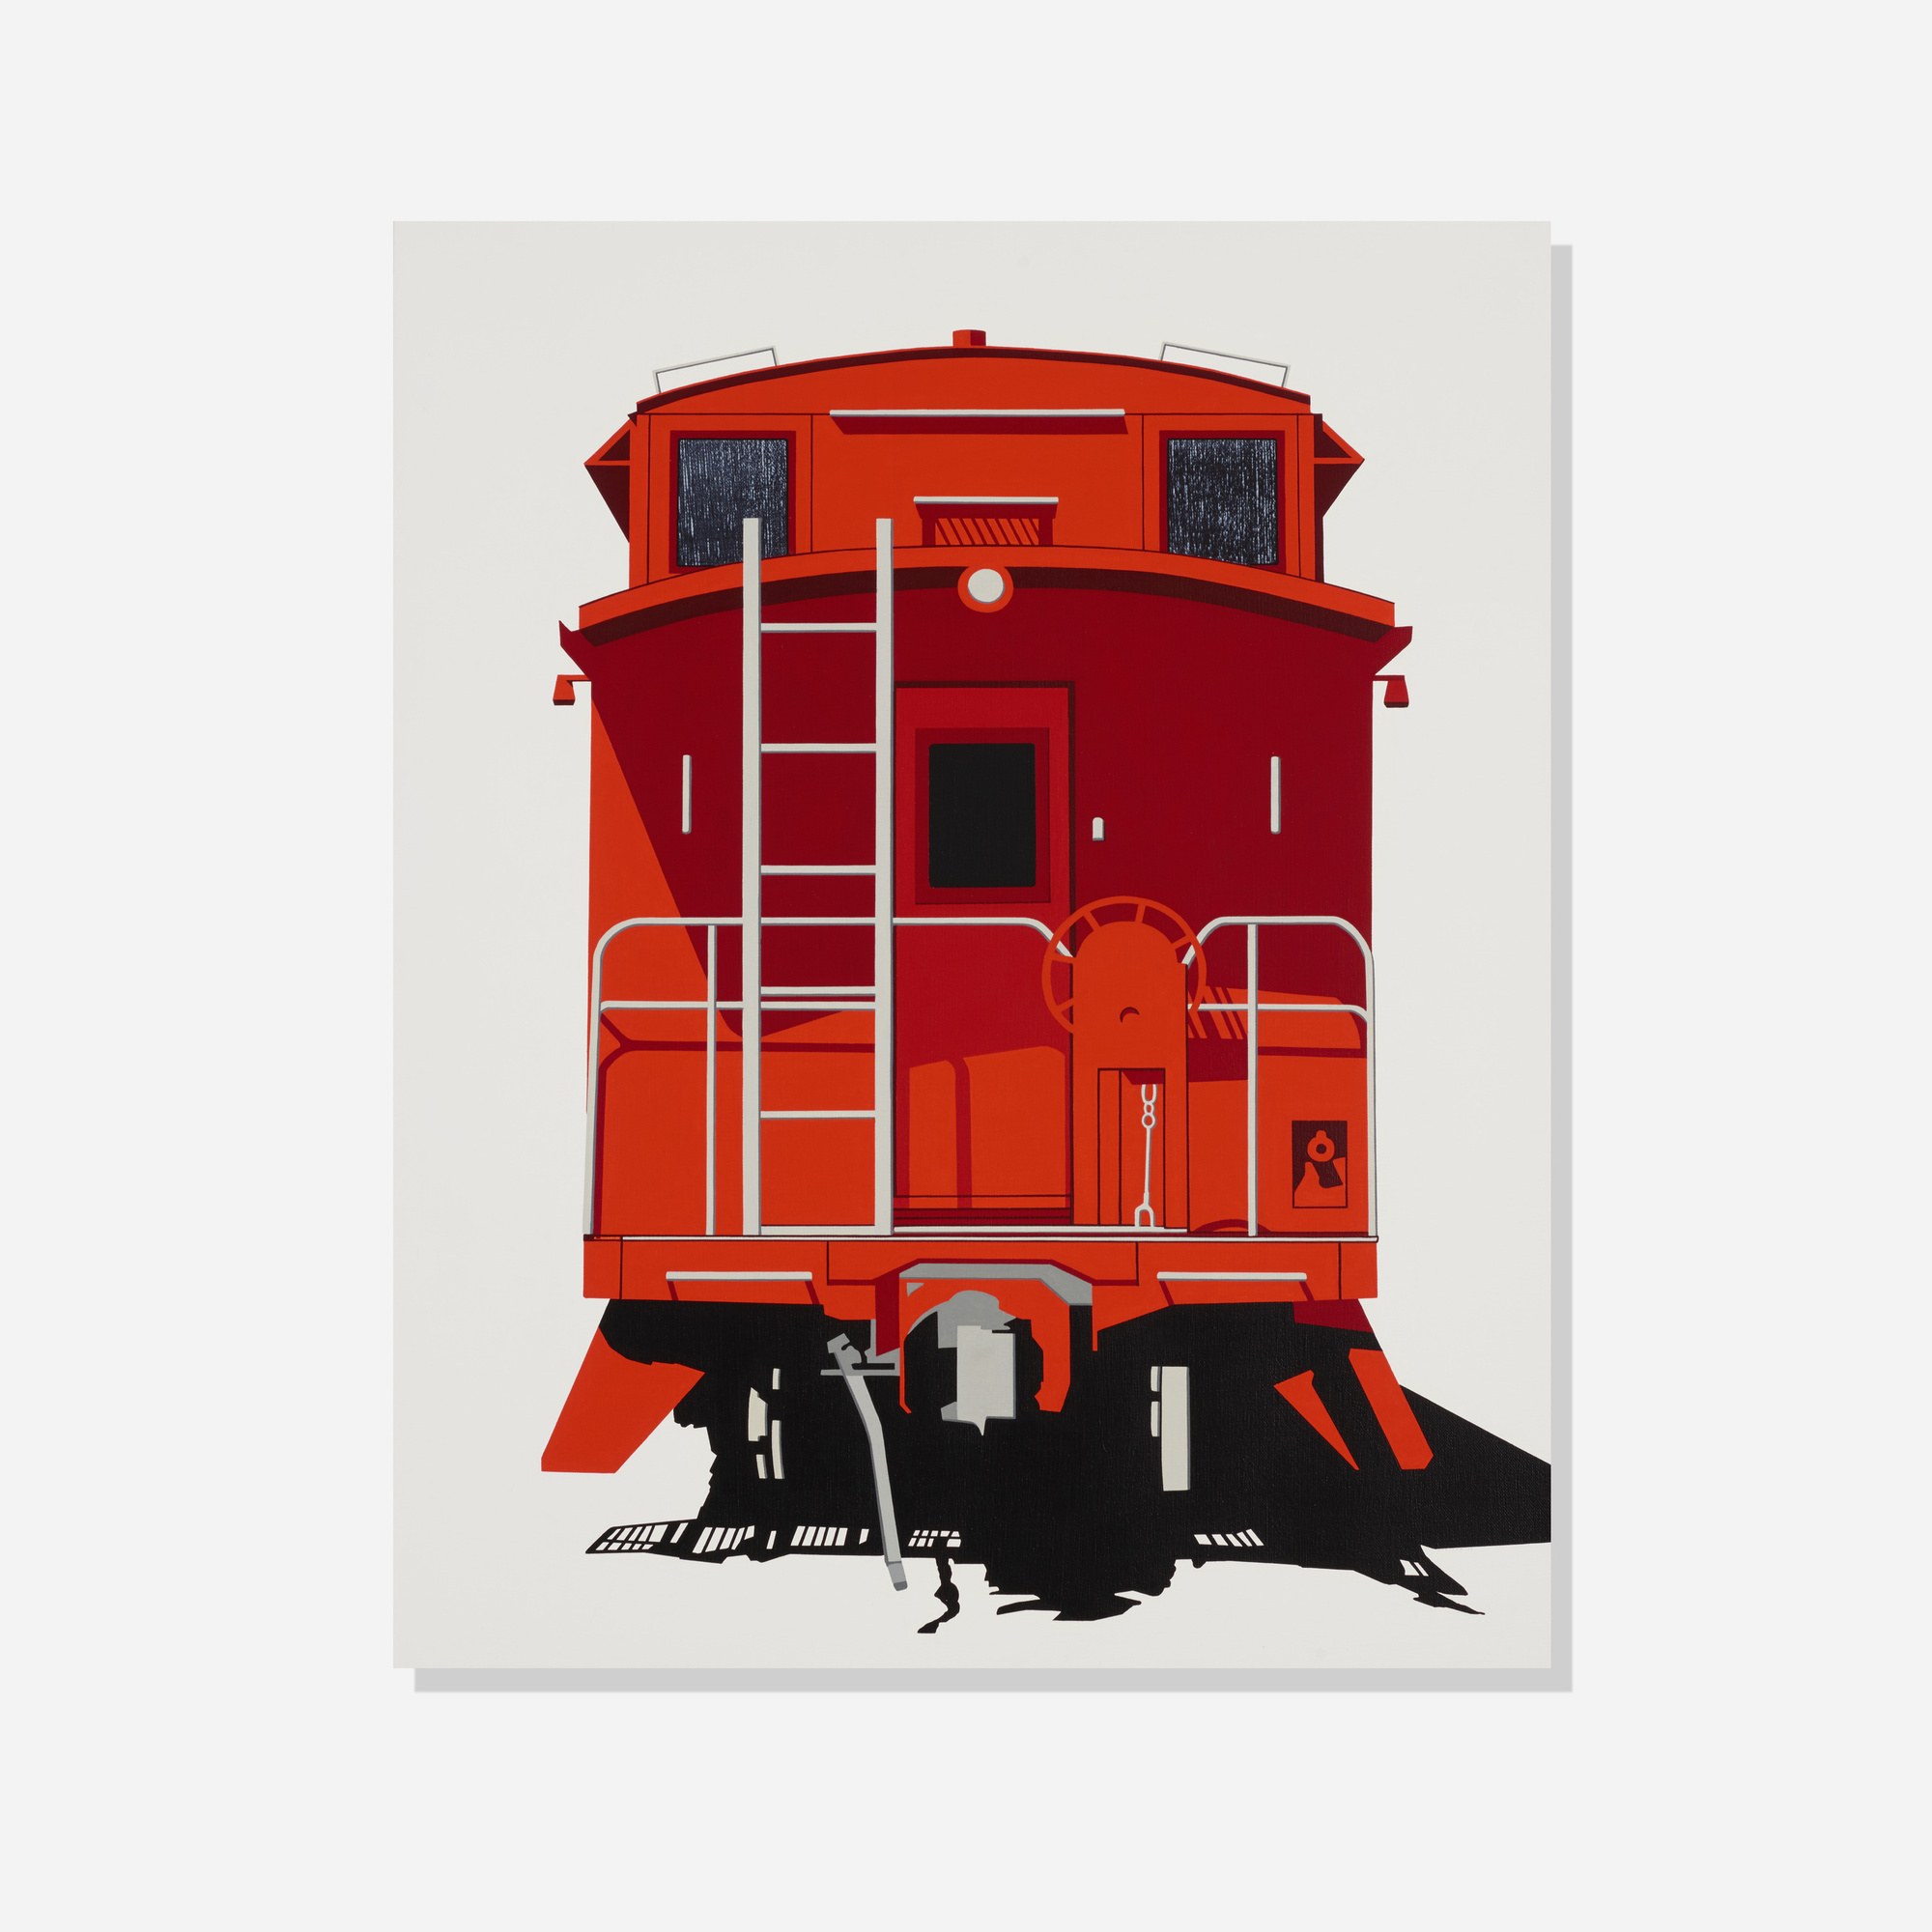 305: William Steiger / End View-Caboose (1 of 2)